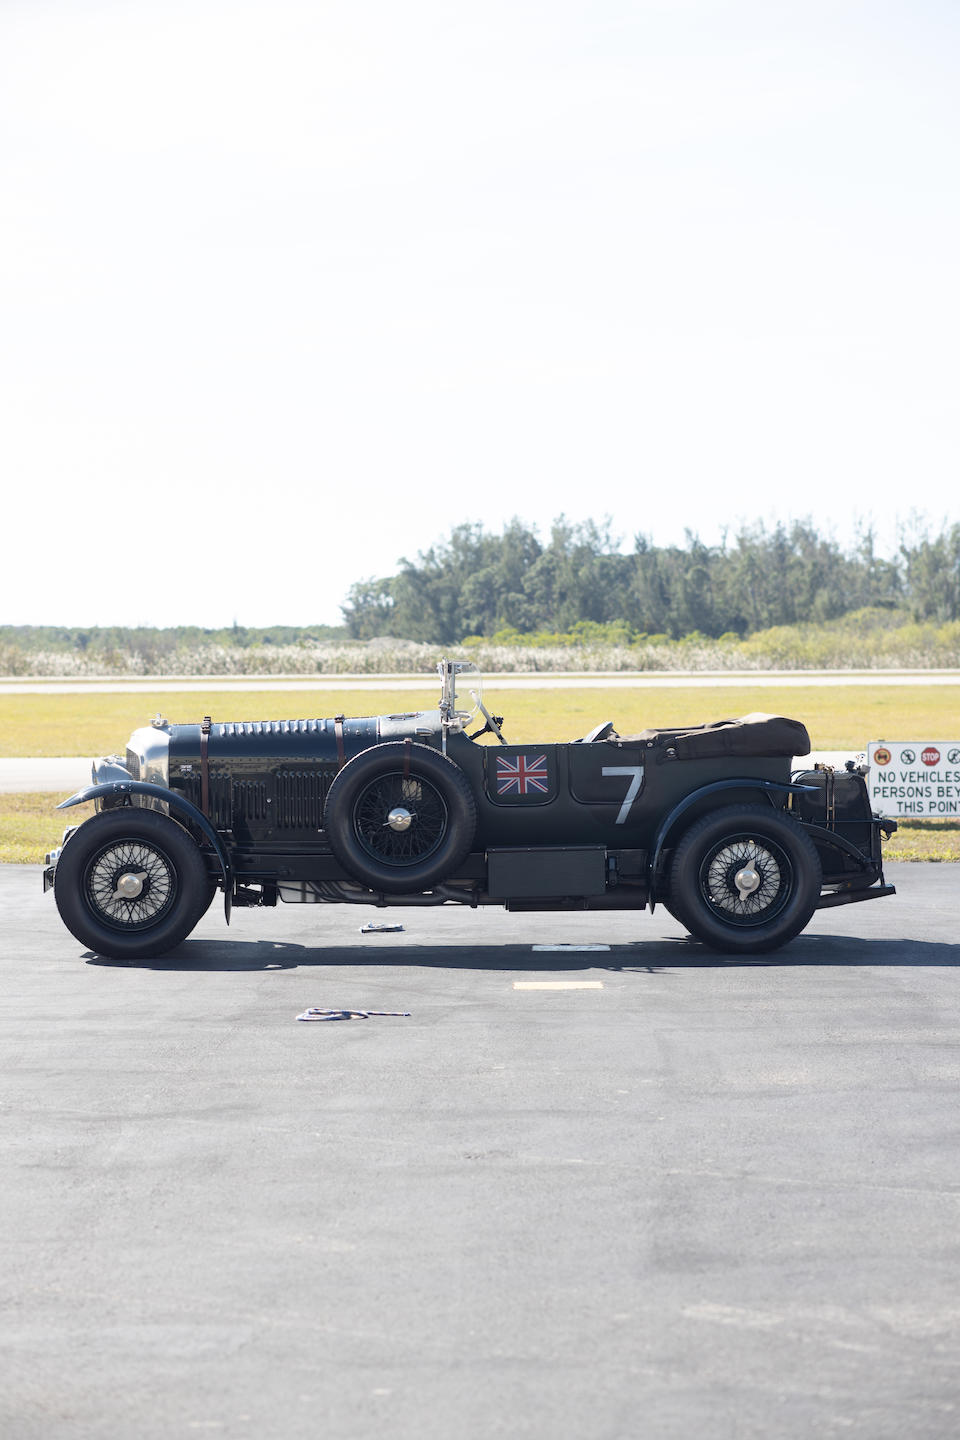 "<b>1929/1998 Petersen ""Barclay Blower Bentley""</b><br />Chassis no. GUJ 33"